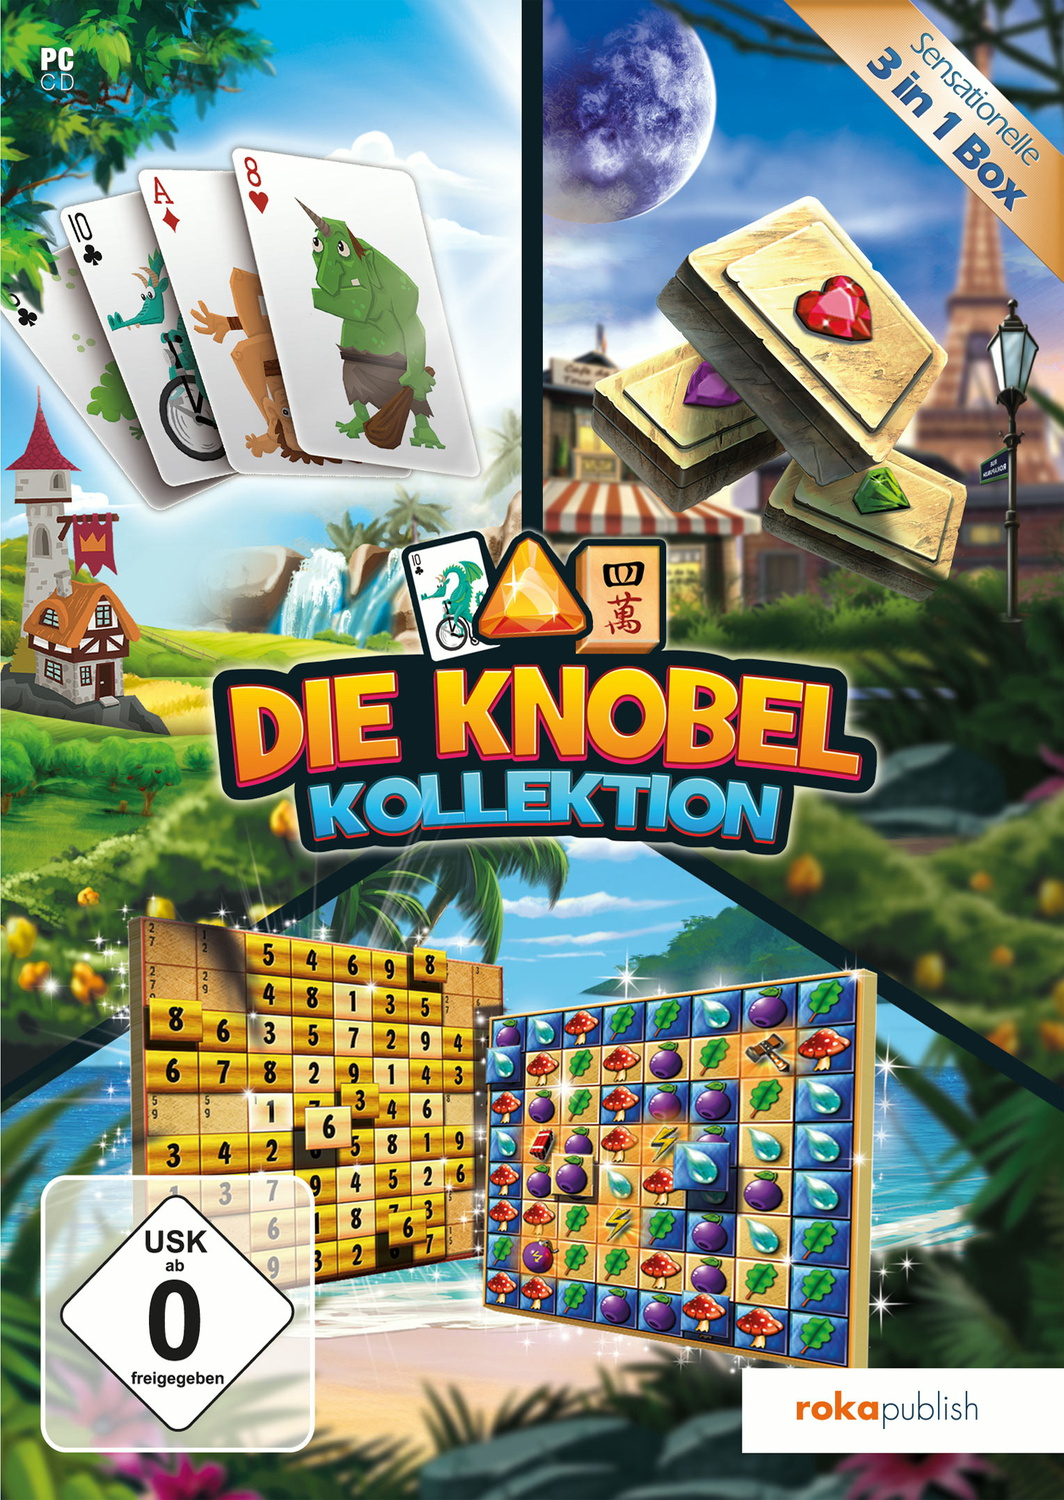 Die Knobel Kollektion